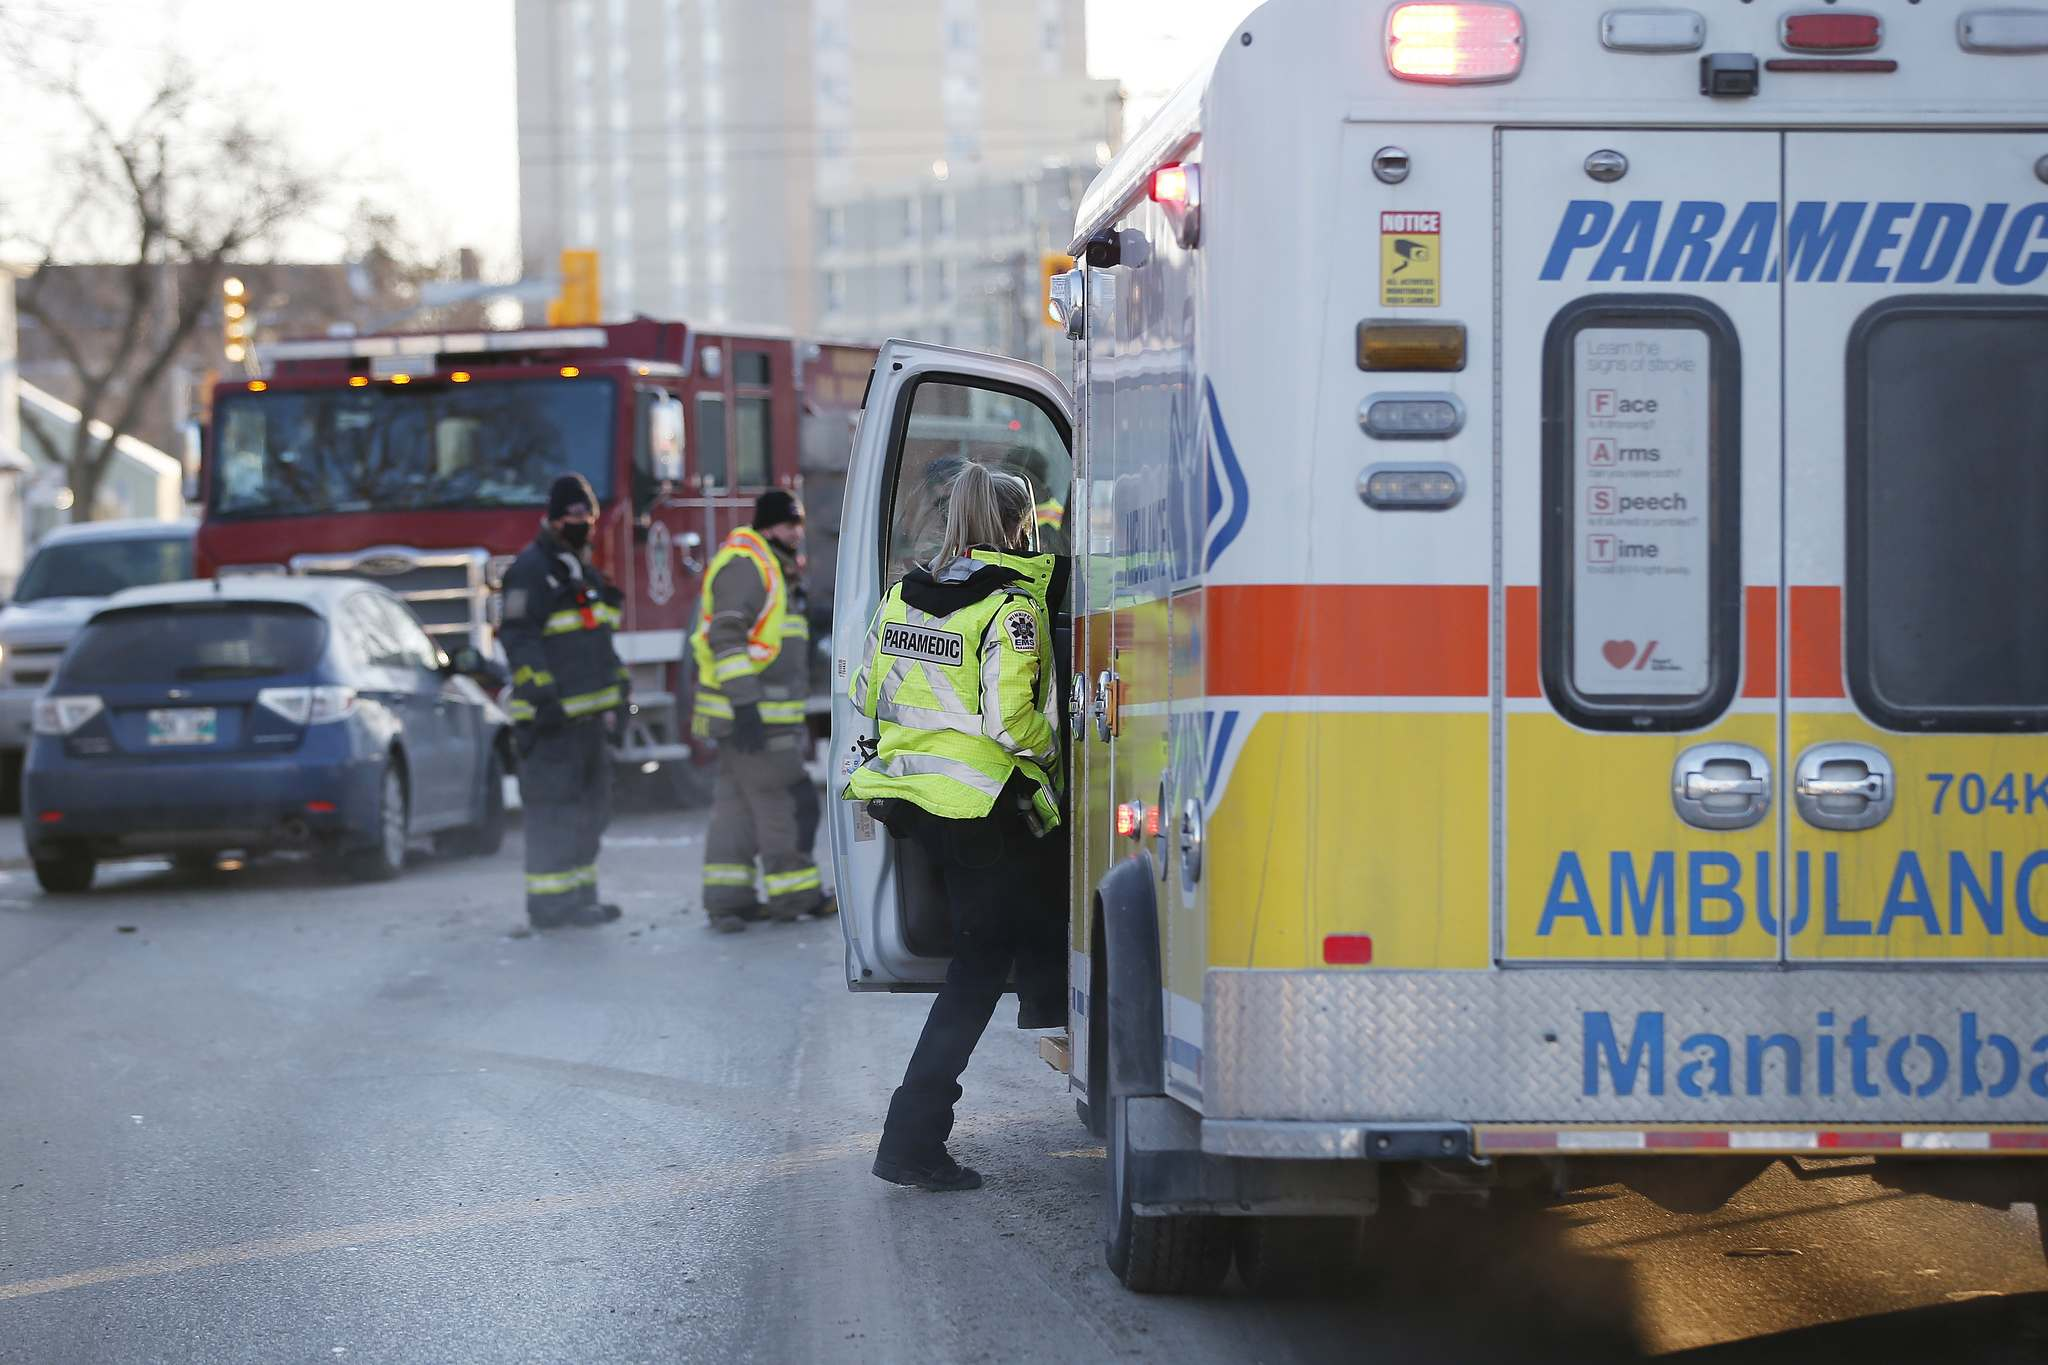 Winnipeg firefighters and paramedics were amalgamated into one department in the late 1990s. Animosity between the two sides has continued unabated for nearly 25 years.</p>